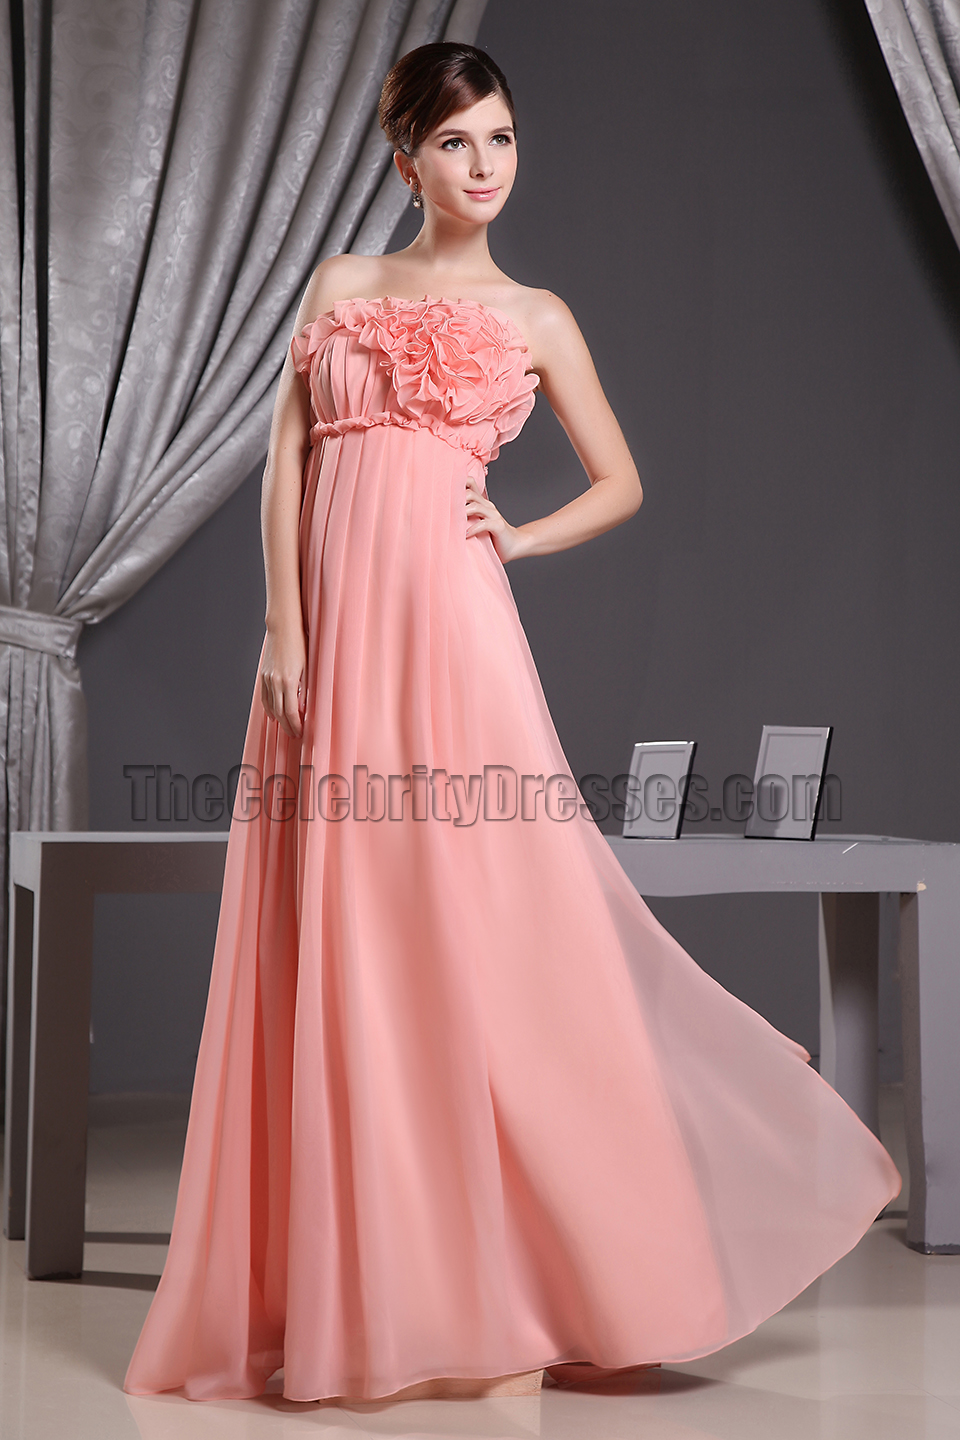 Coral strapless a line prom dress formal bridesmaid dresses coral strapless a line prom dress formal bridesmaid dresses thecelebritydresses ombrellifo Choice Image